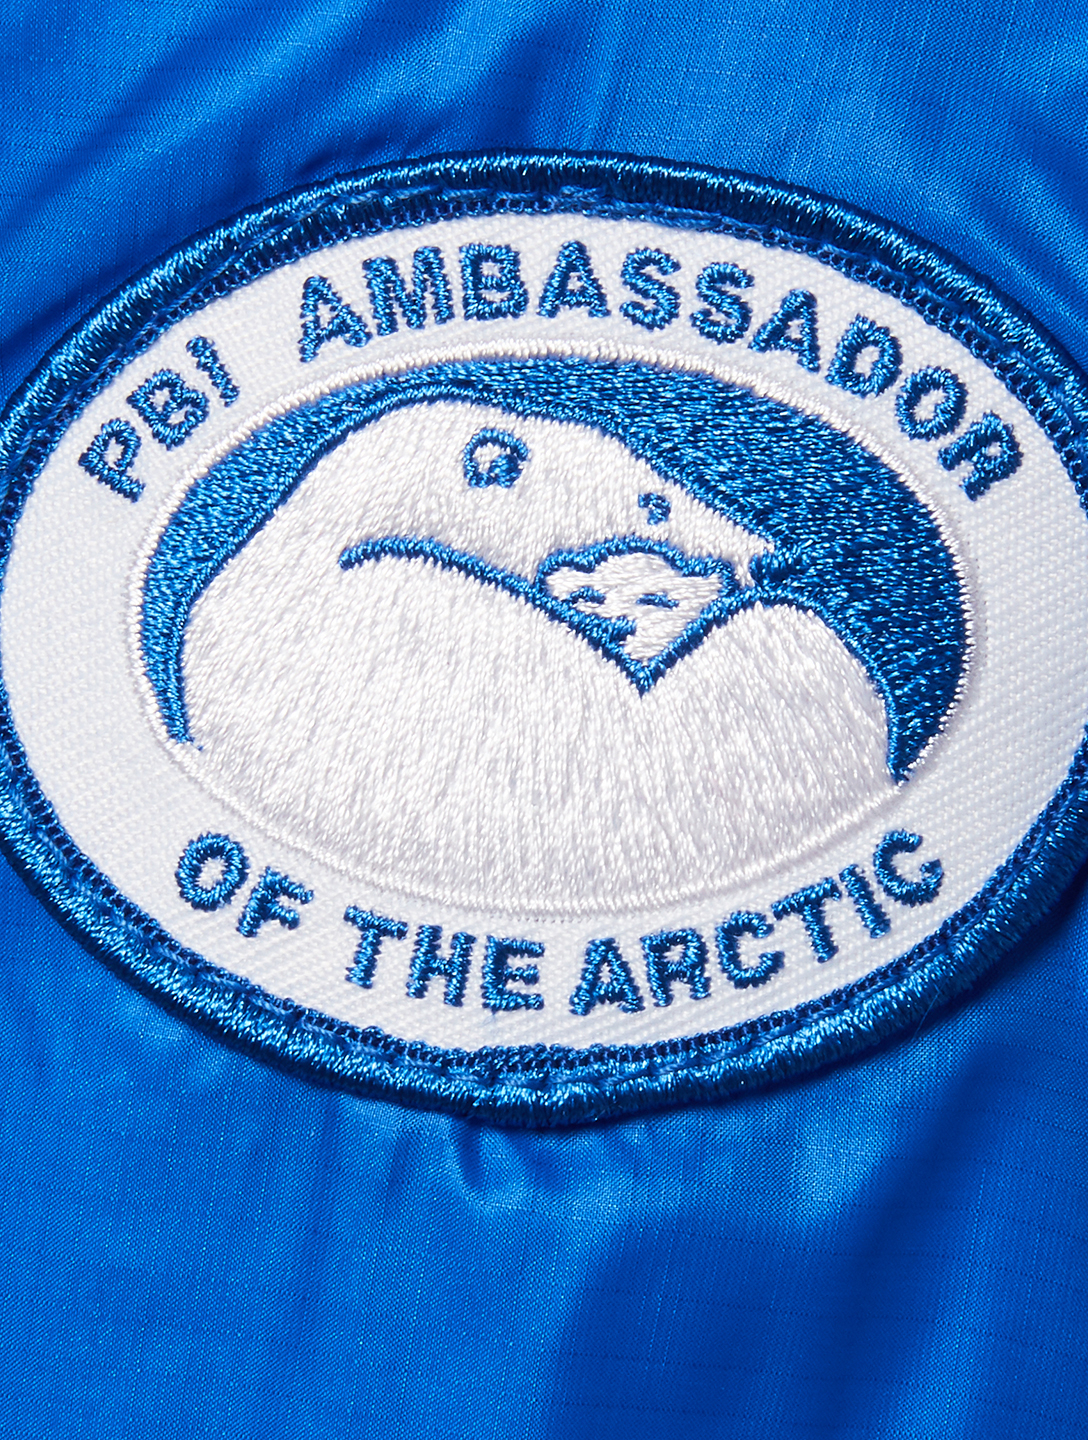 CANADA GOOSE PBI Camp Hoody Down Puffer Jacket Designers Blue